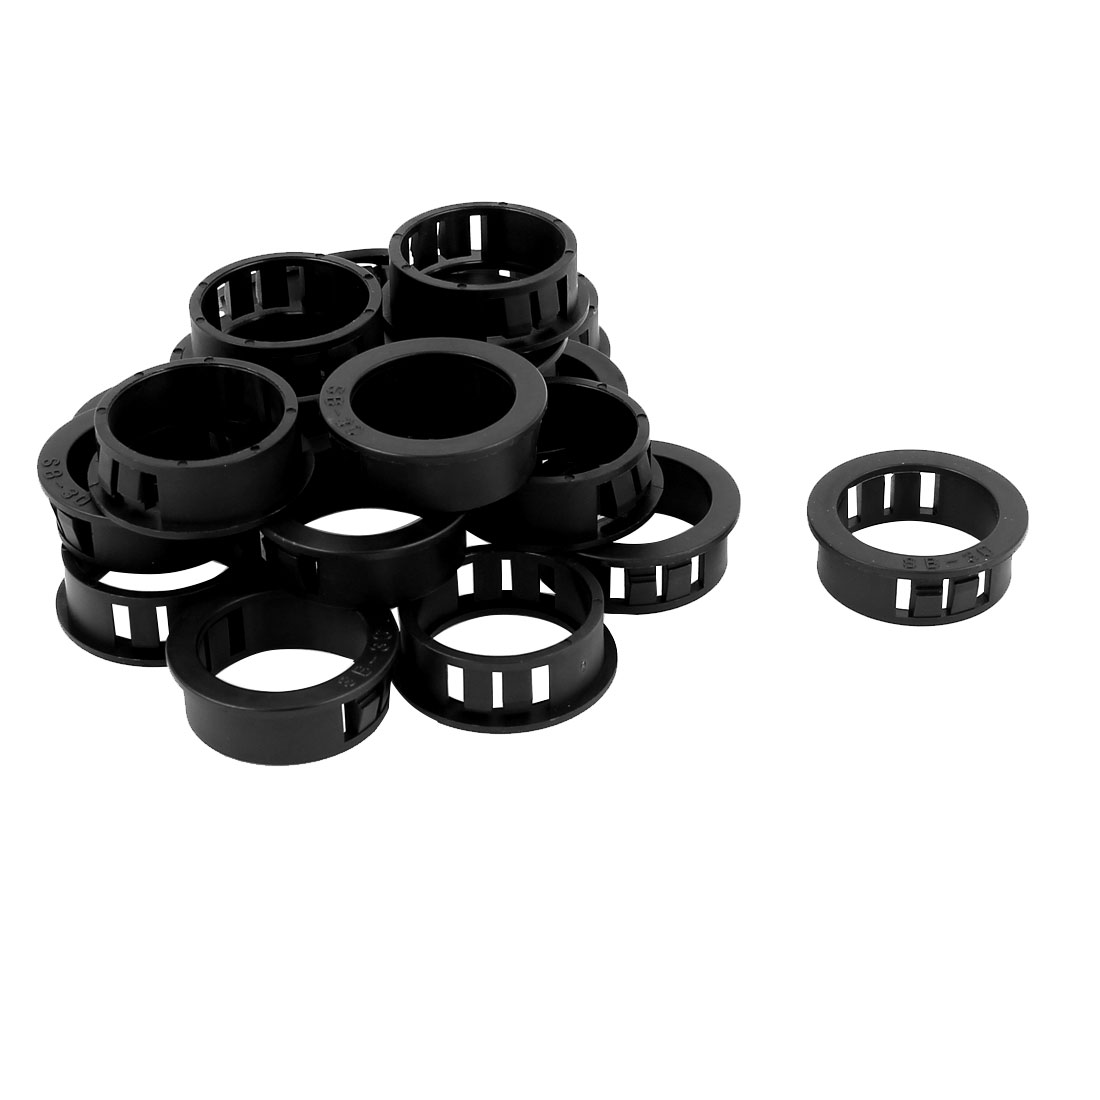 Plastic 30mm Cable Hose Snap Locking Bushing Protective Grommet 20Pcs Black